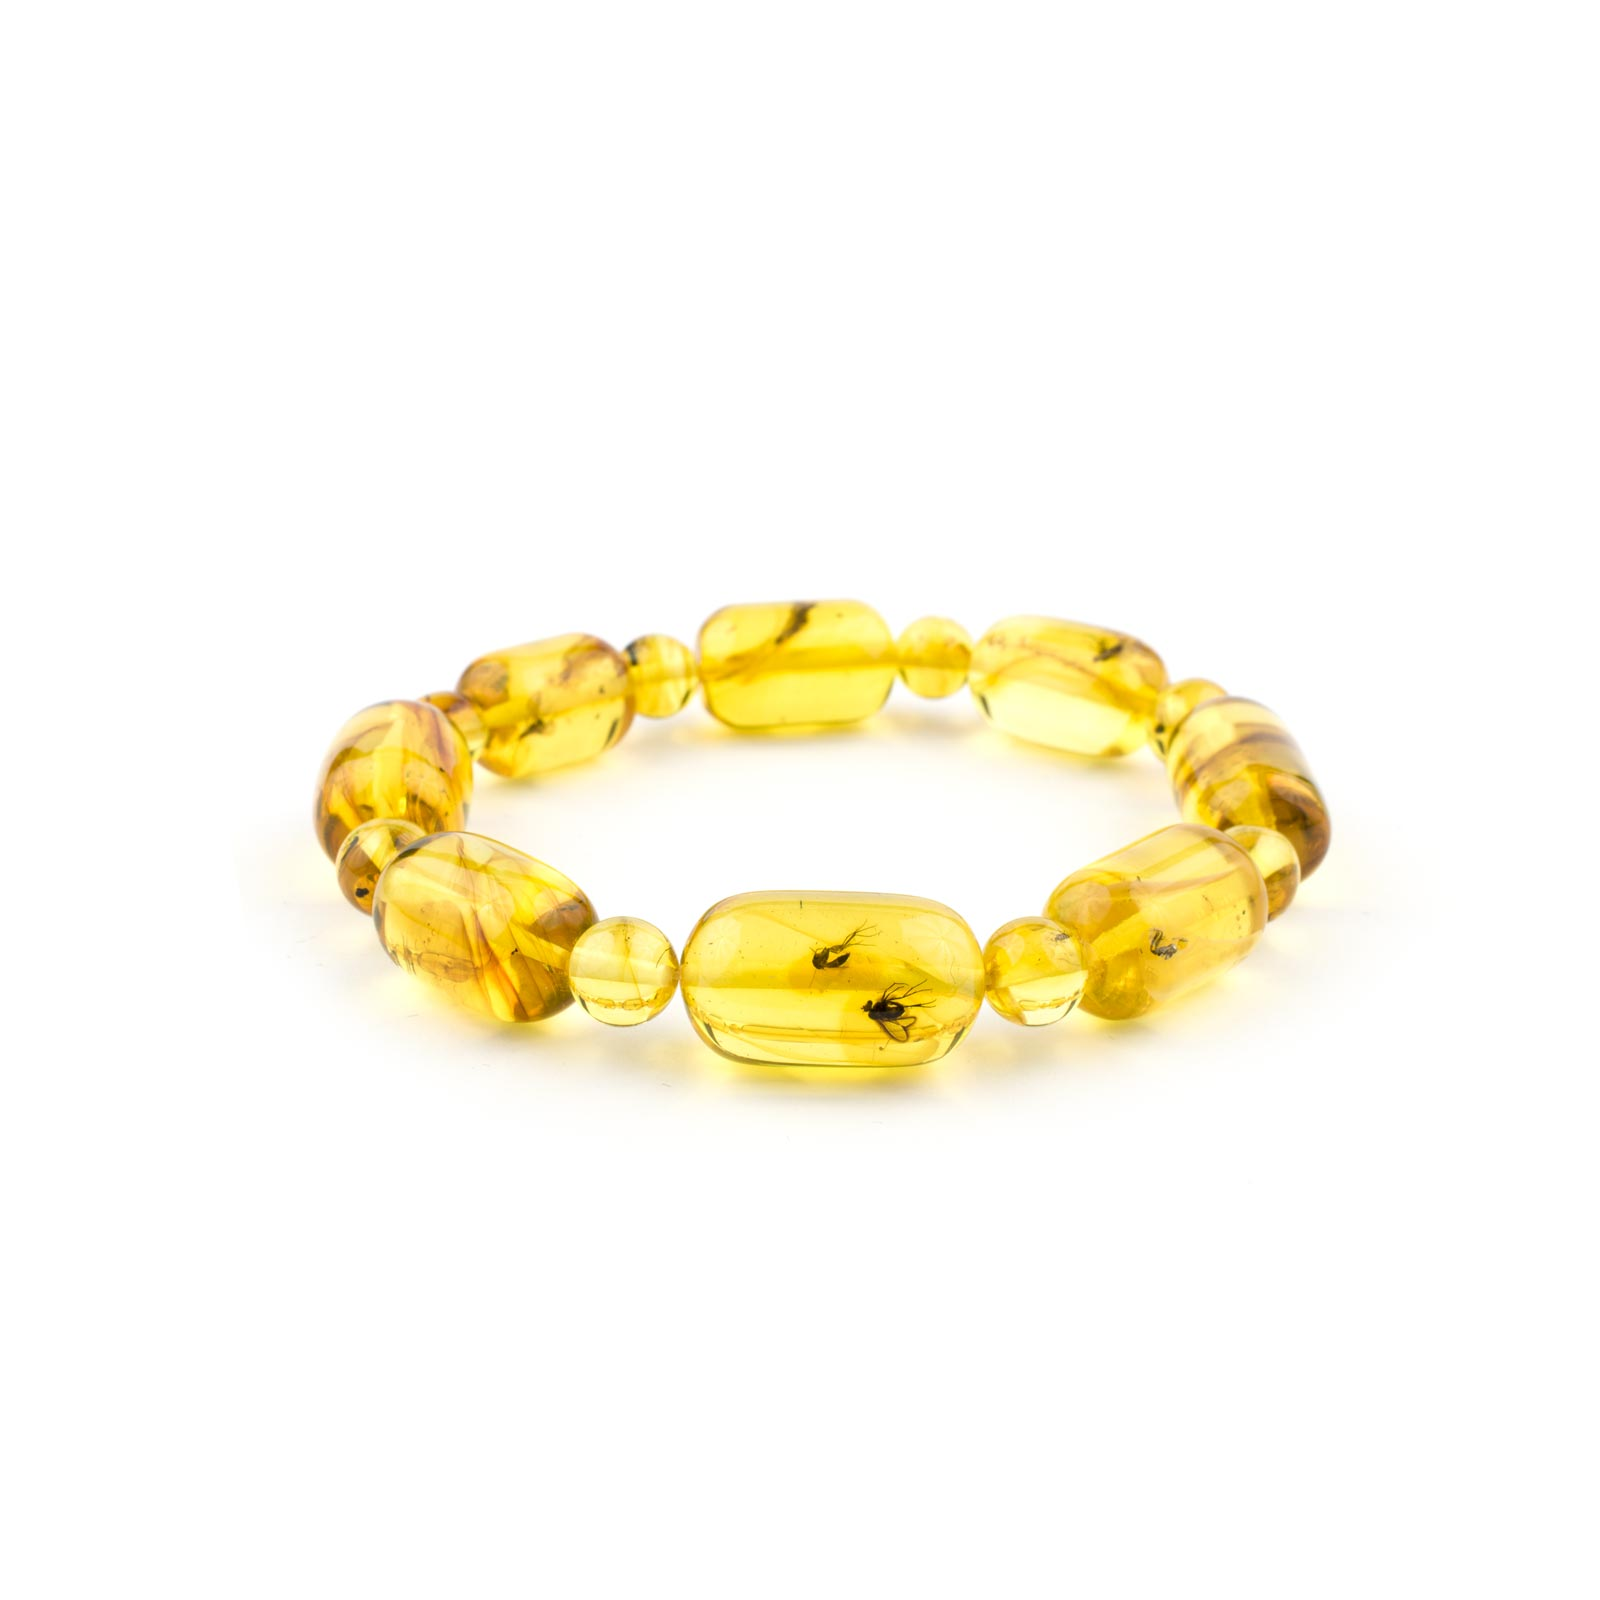 Transparent Yellow Bracelet with Inclusions